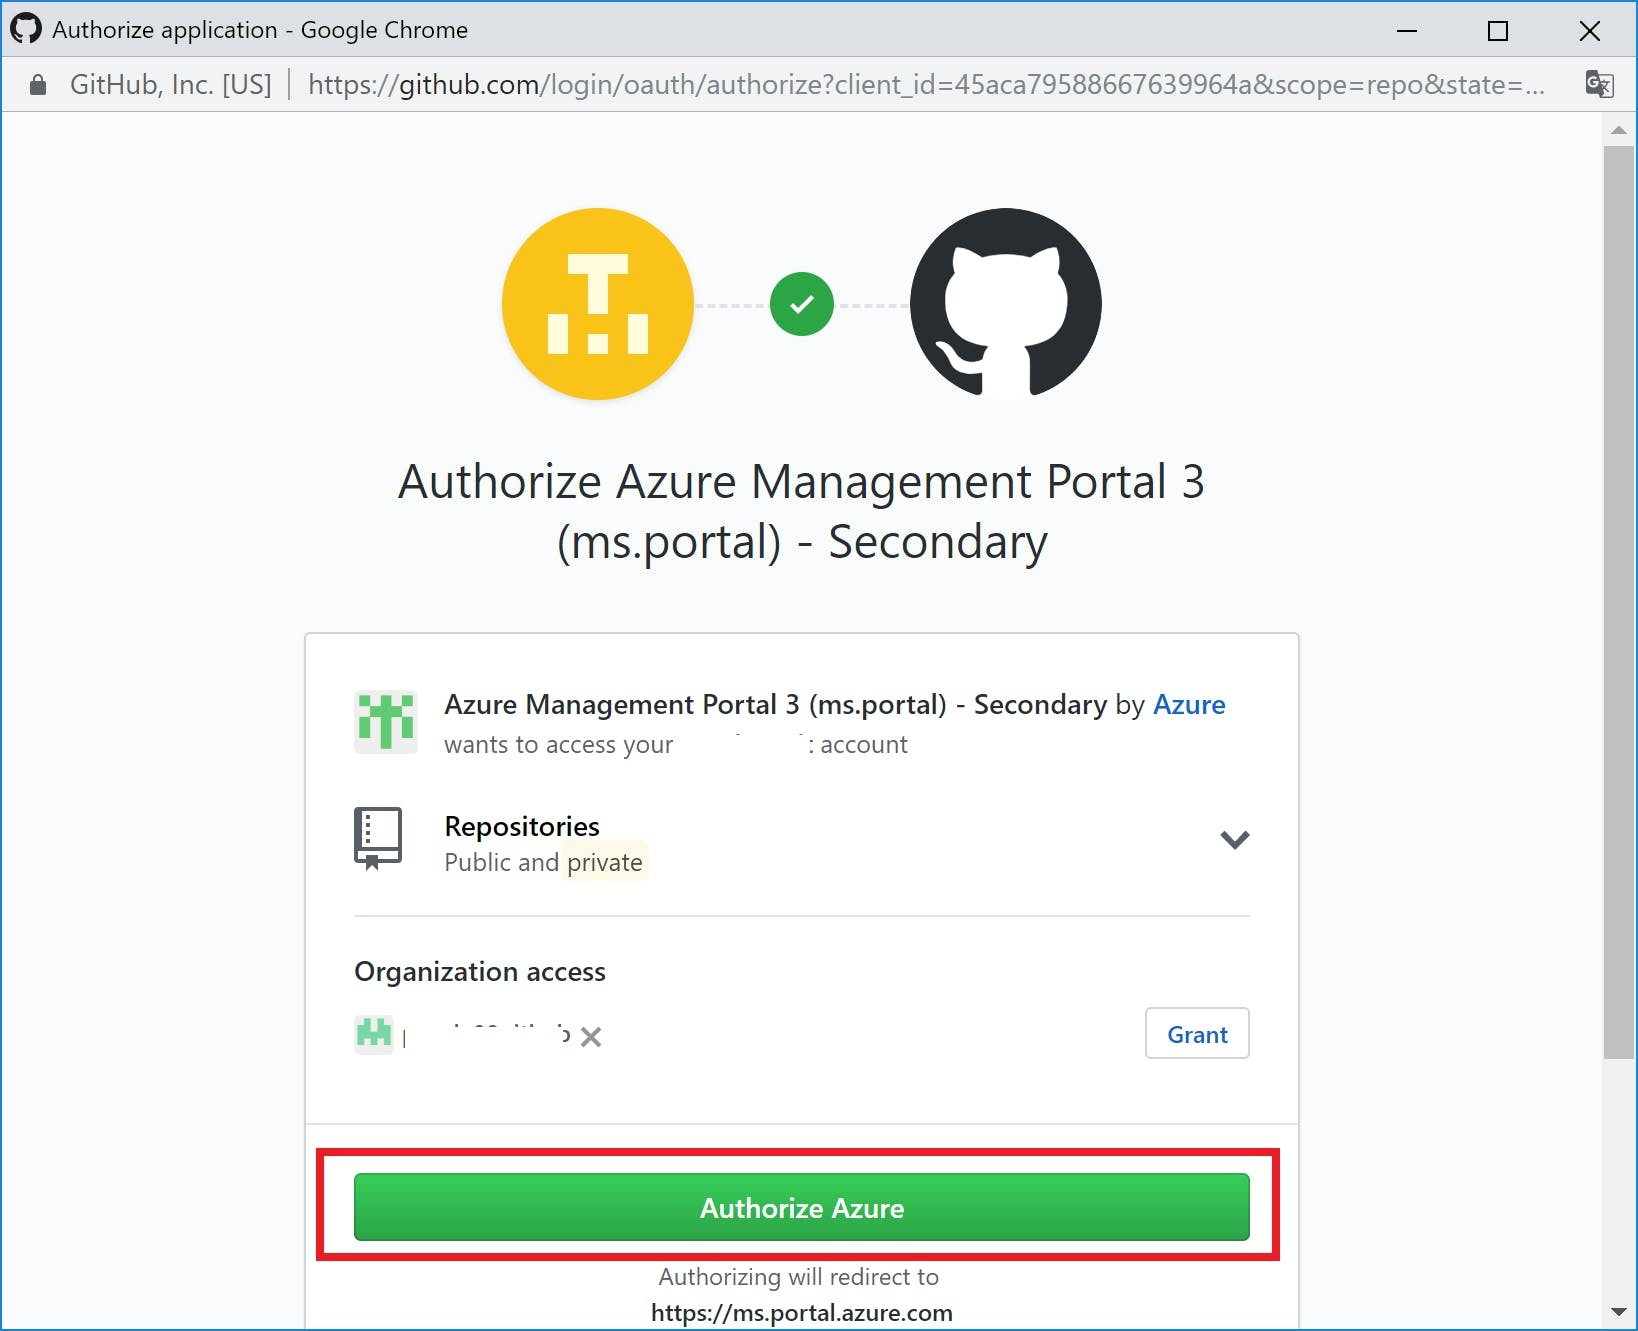 Authorize Azureを押下